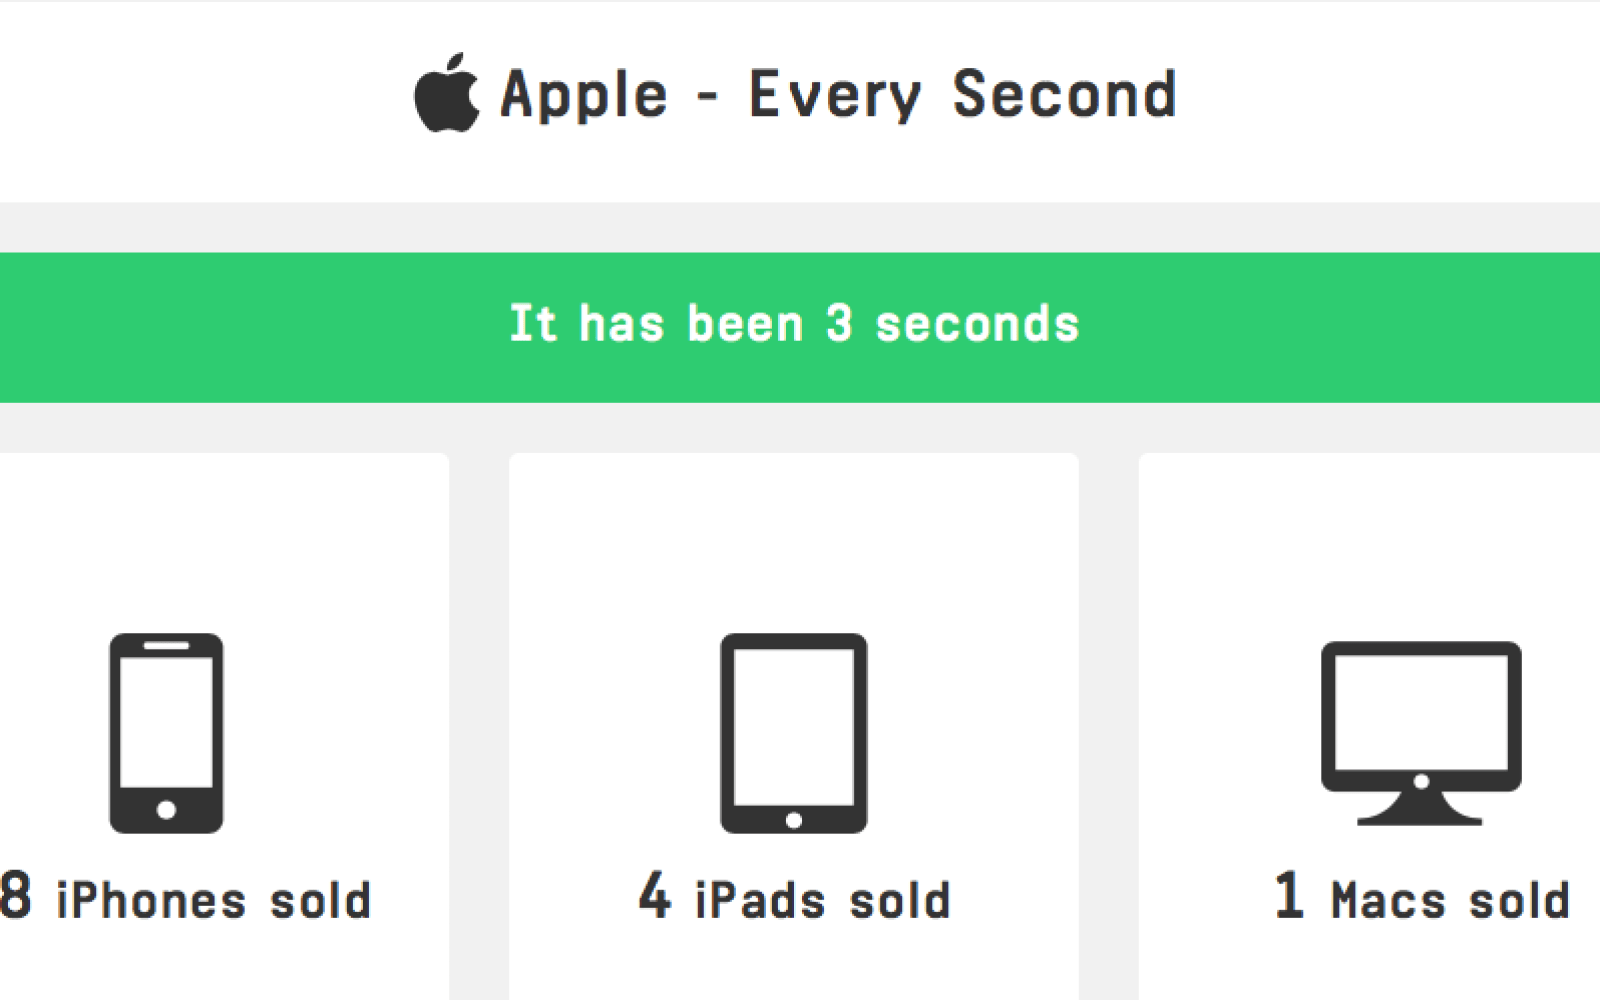 Watch Apple sell 18 iPhones in the time it took you to read this headline